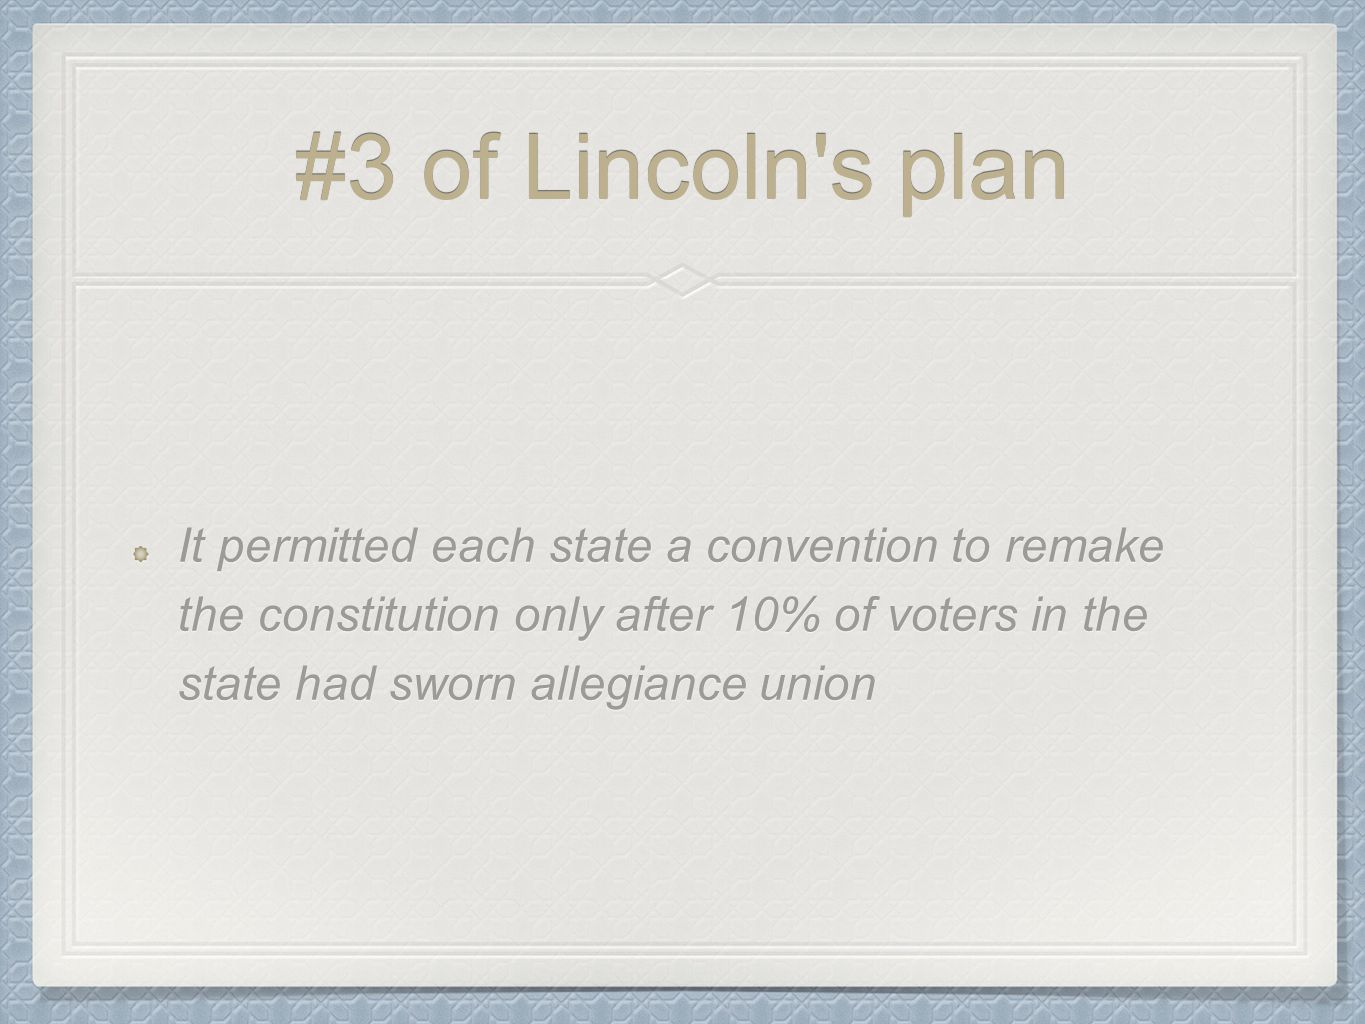 #3 of Lincoln's plan It permitted each state a convention to remake the constitution only after 10% of voters in the state had sworn allegiance union